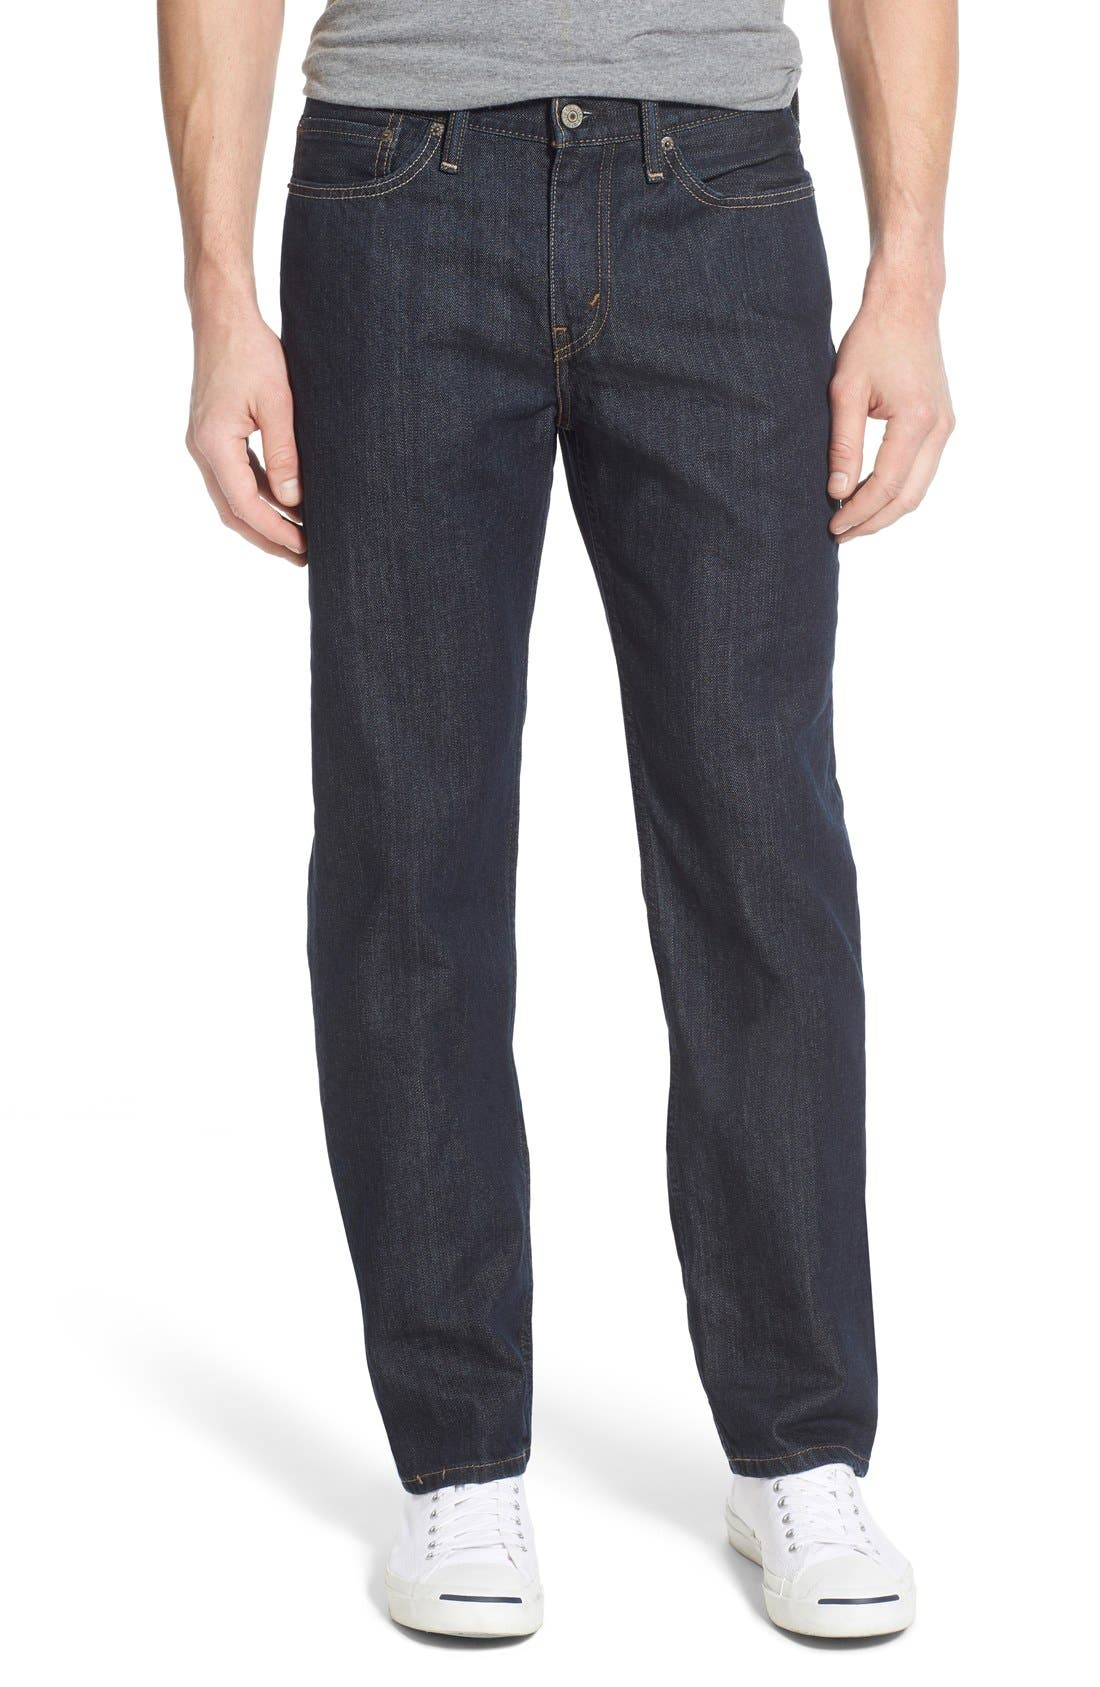 Alternate Image 1 Selected - Levi's® 514™ Straight Leg Jeans (Tumbled Rigid) (Regular & Tall)